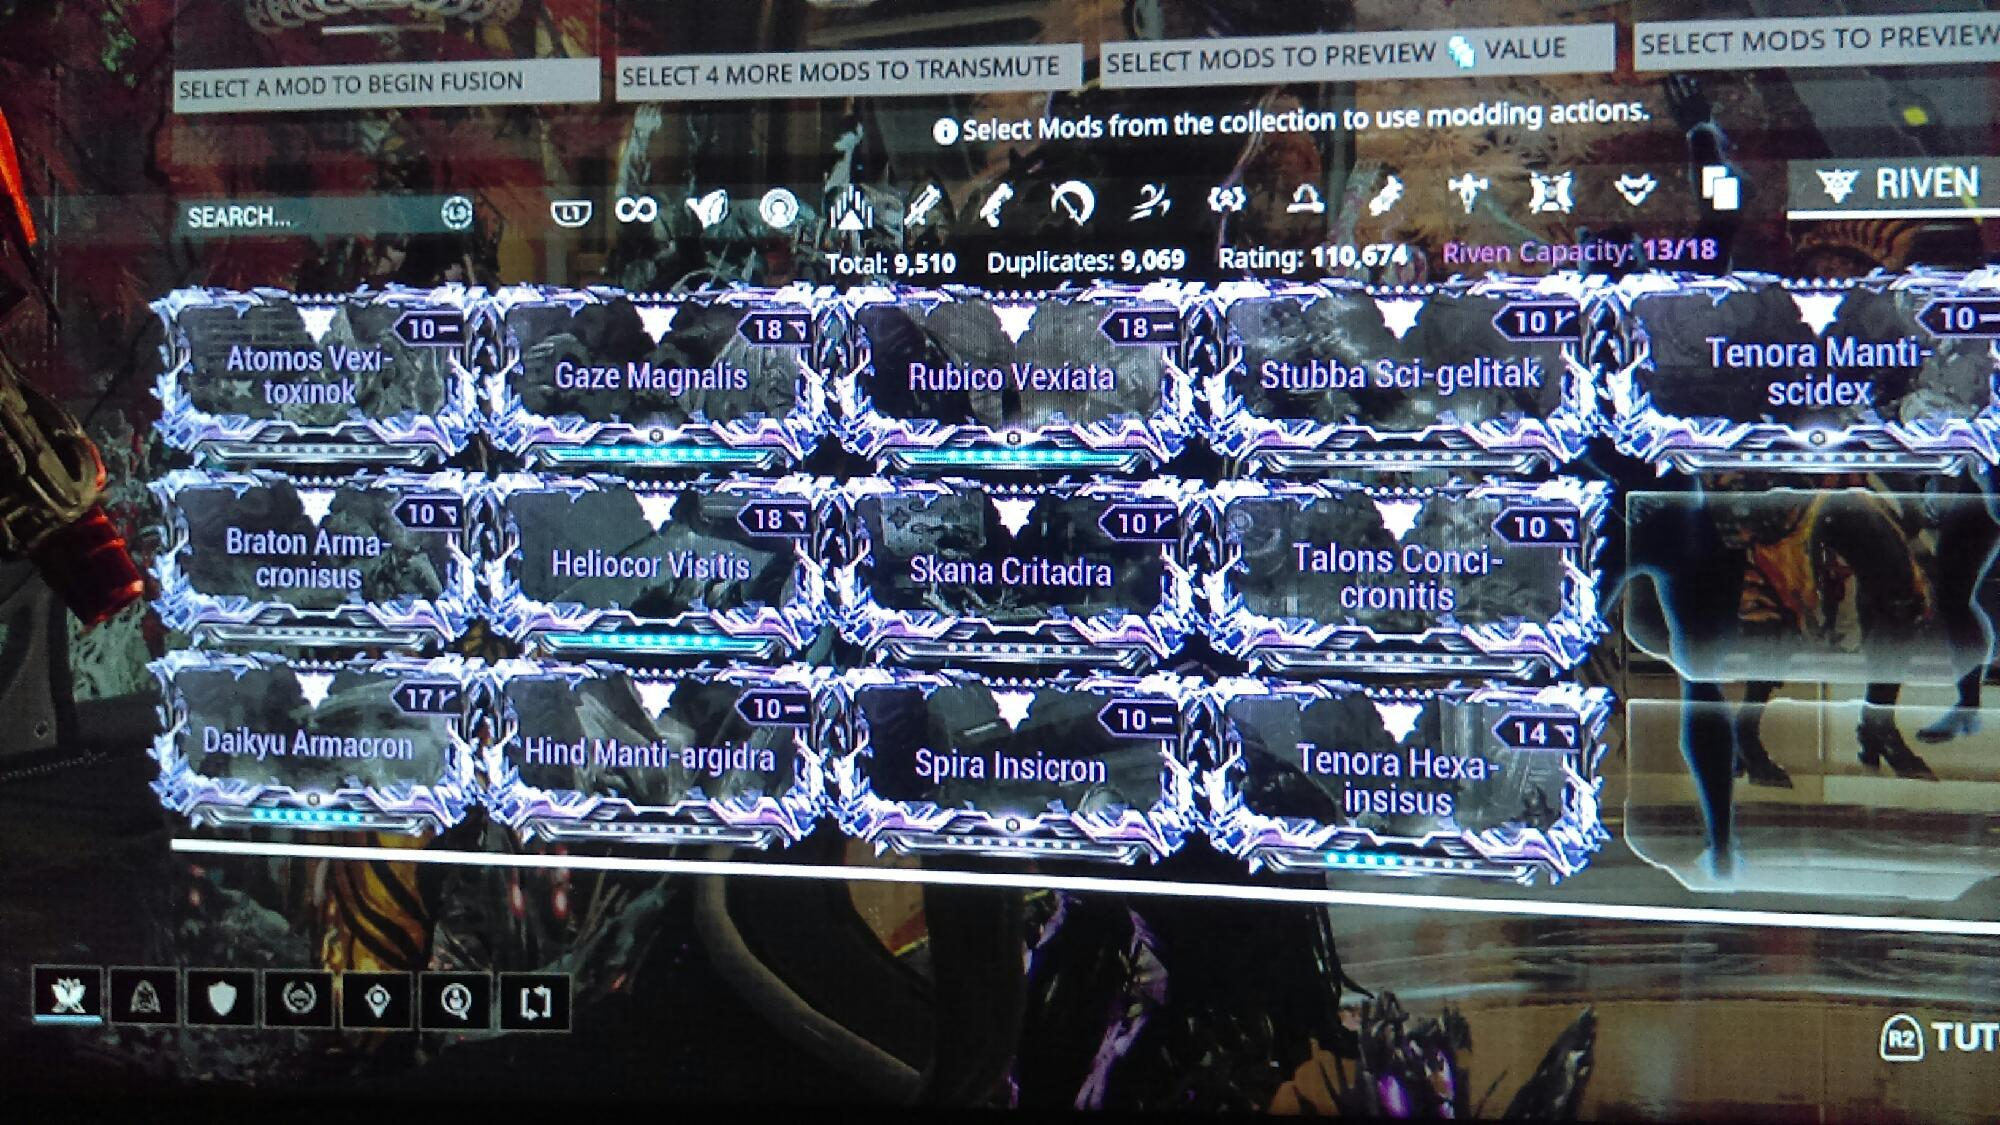 WTS riven mods [PS4]